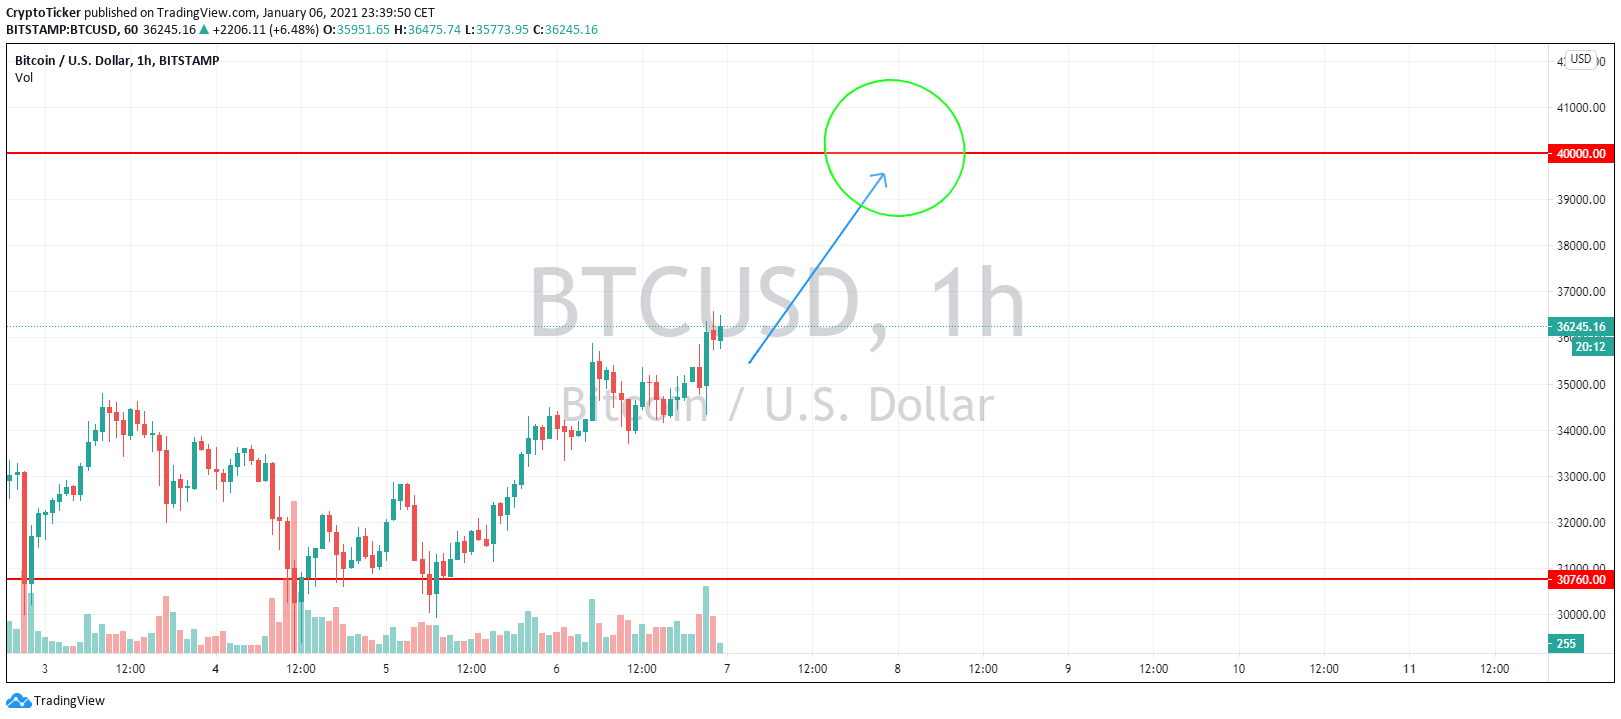 BTC/USD 1-hour chart showing Bitcoin eyeing USD 40,000